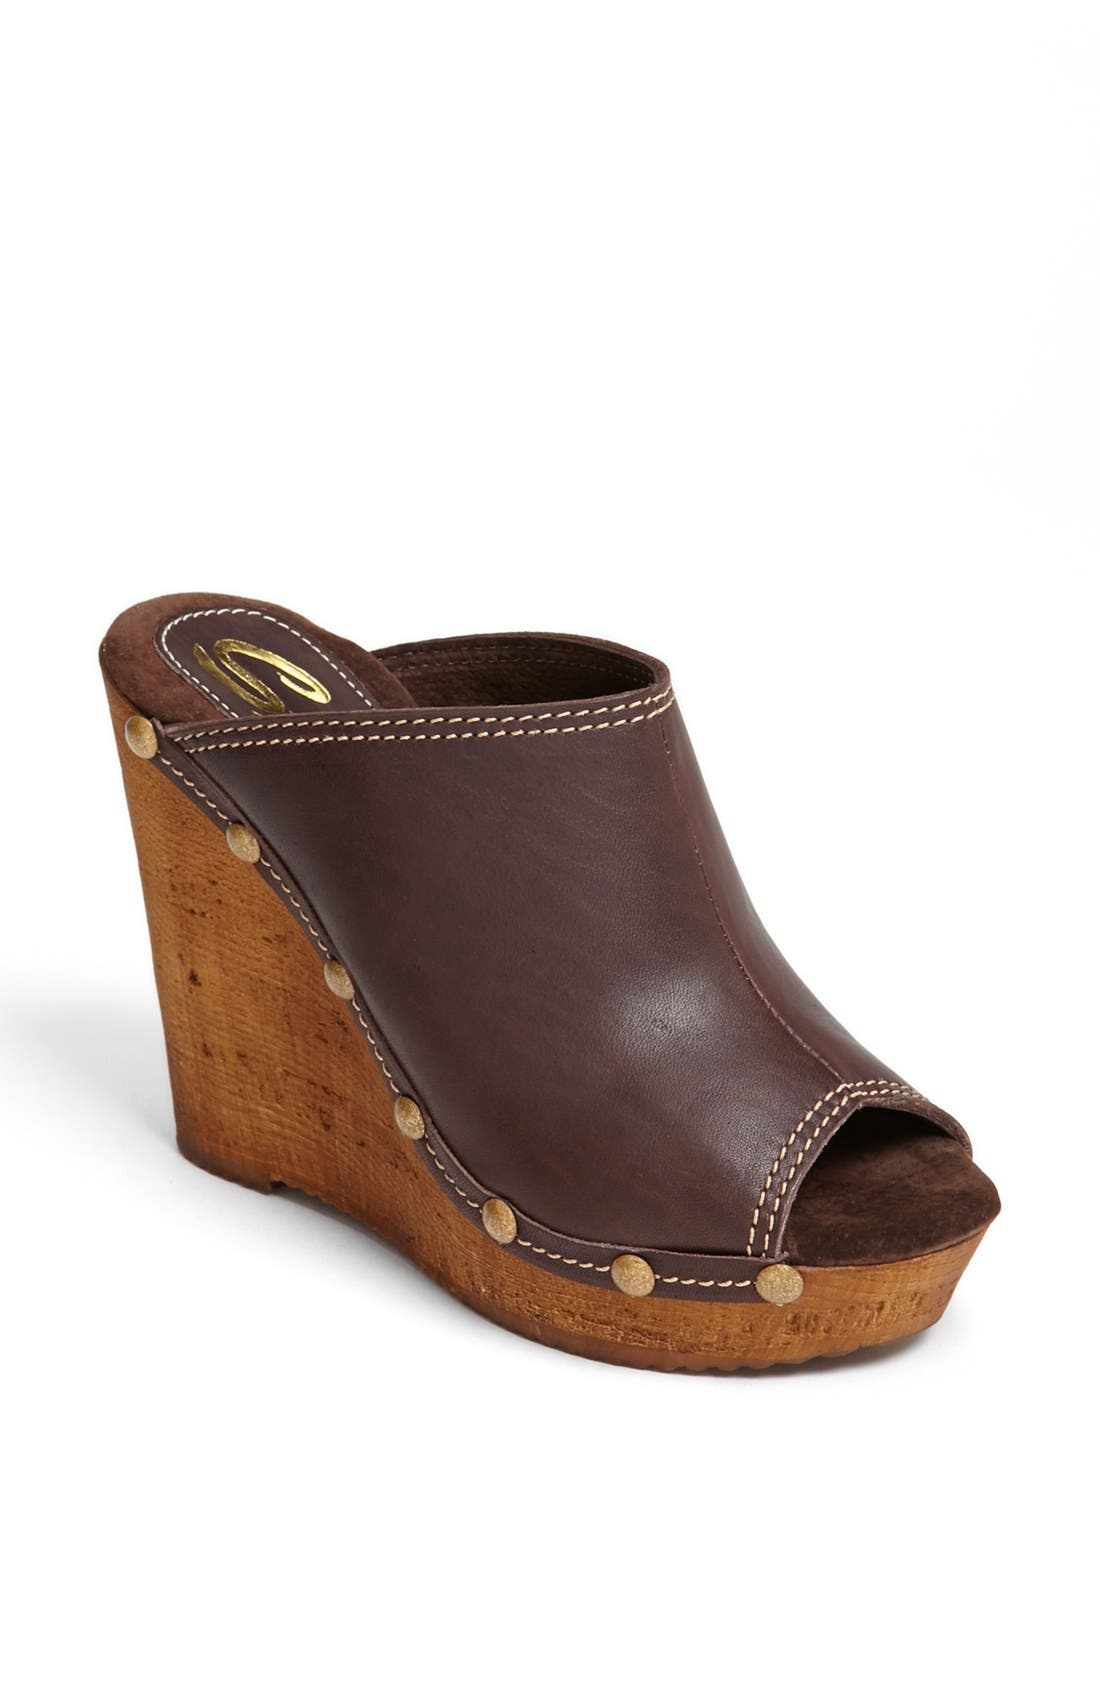 Main Image - Sbicca 'Guthrie' Wedge Sandal